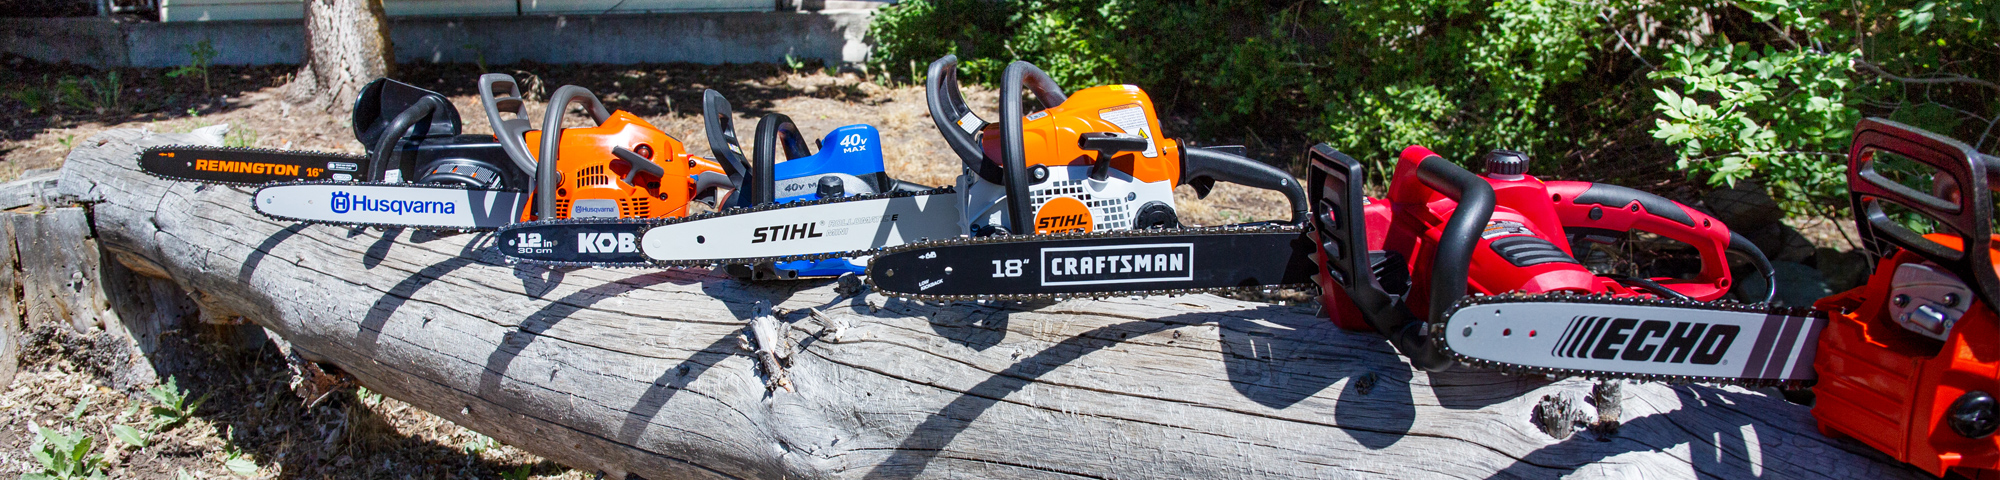 Best Chainsaws of 2019 - Small Chainsaws for Less Than $300 | Top